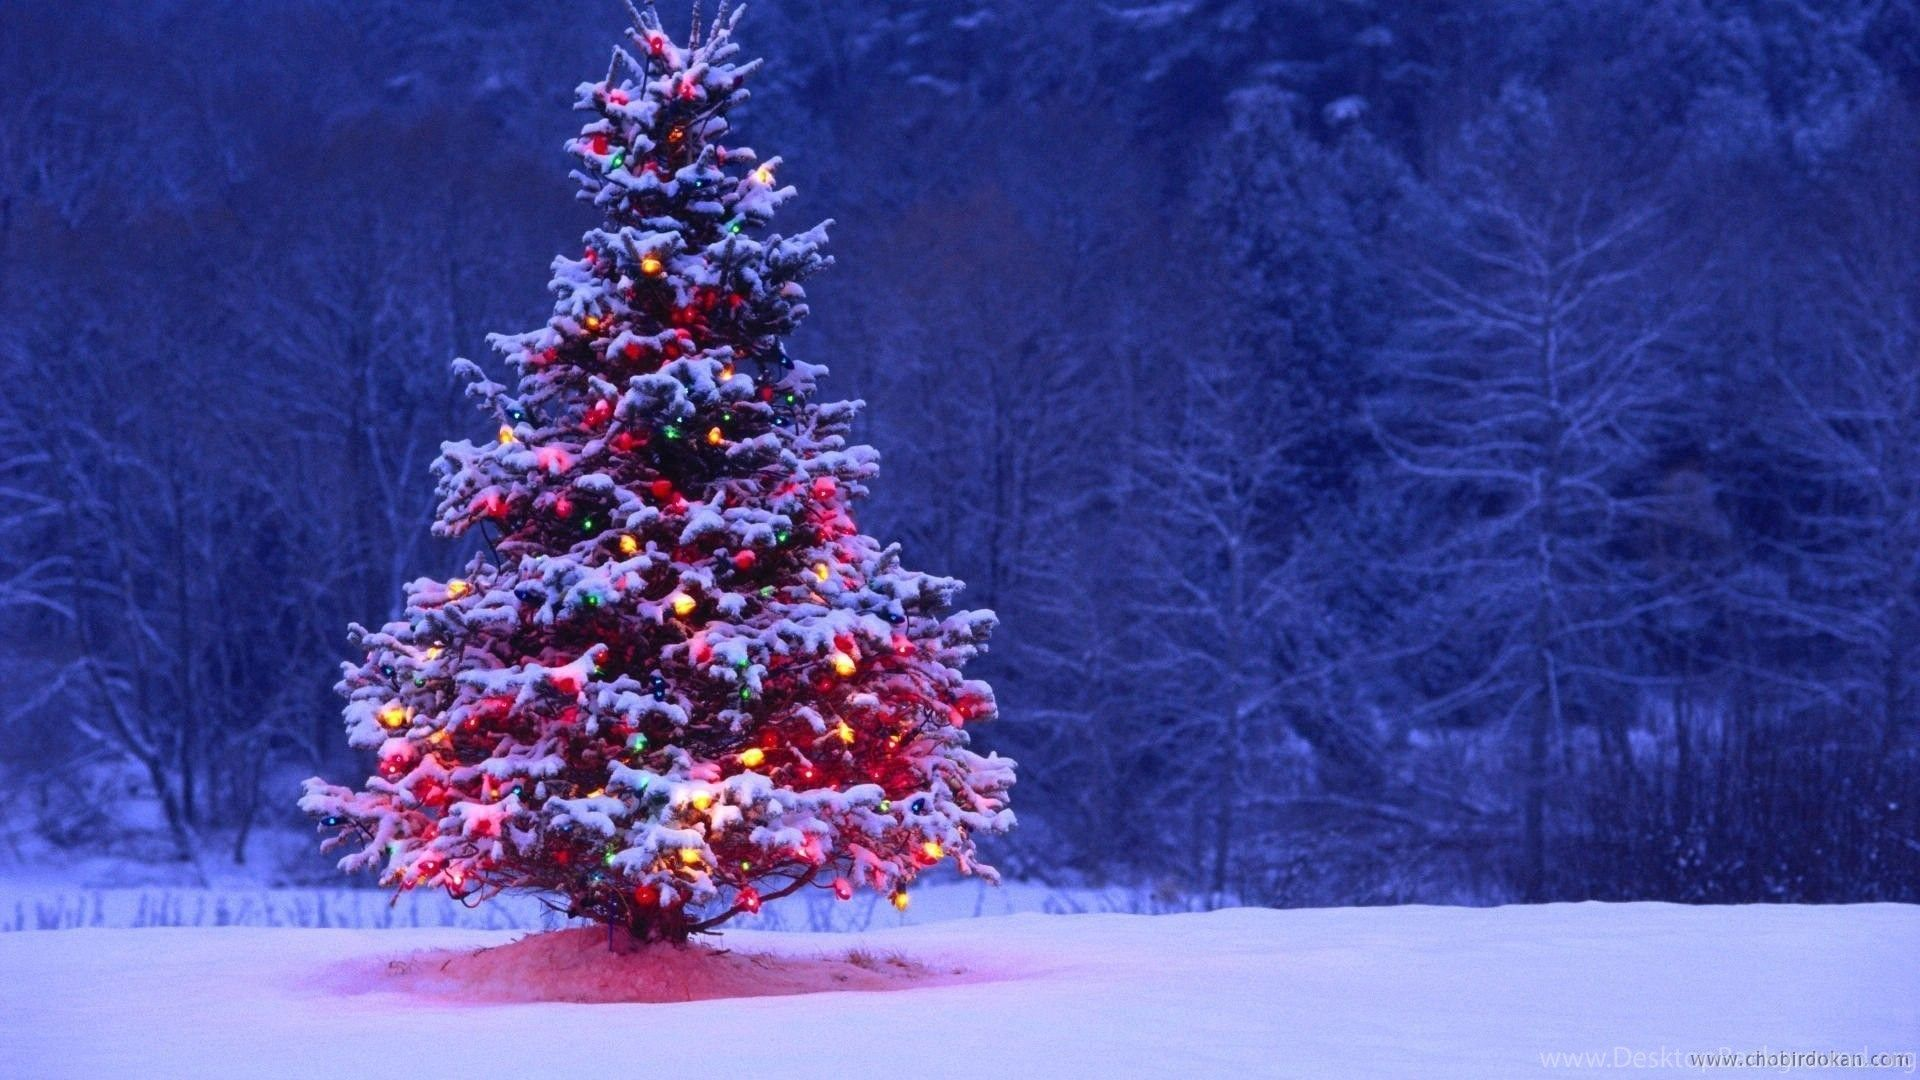 1920x1080 Cute Christmas Tree Backgrounds – Happy Holidays Desktop Background